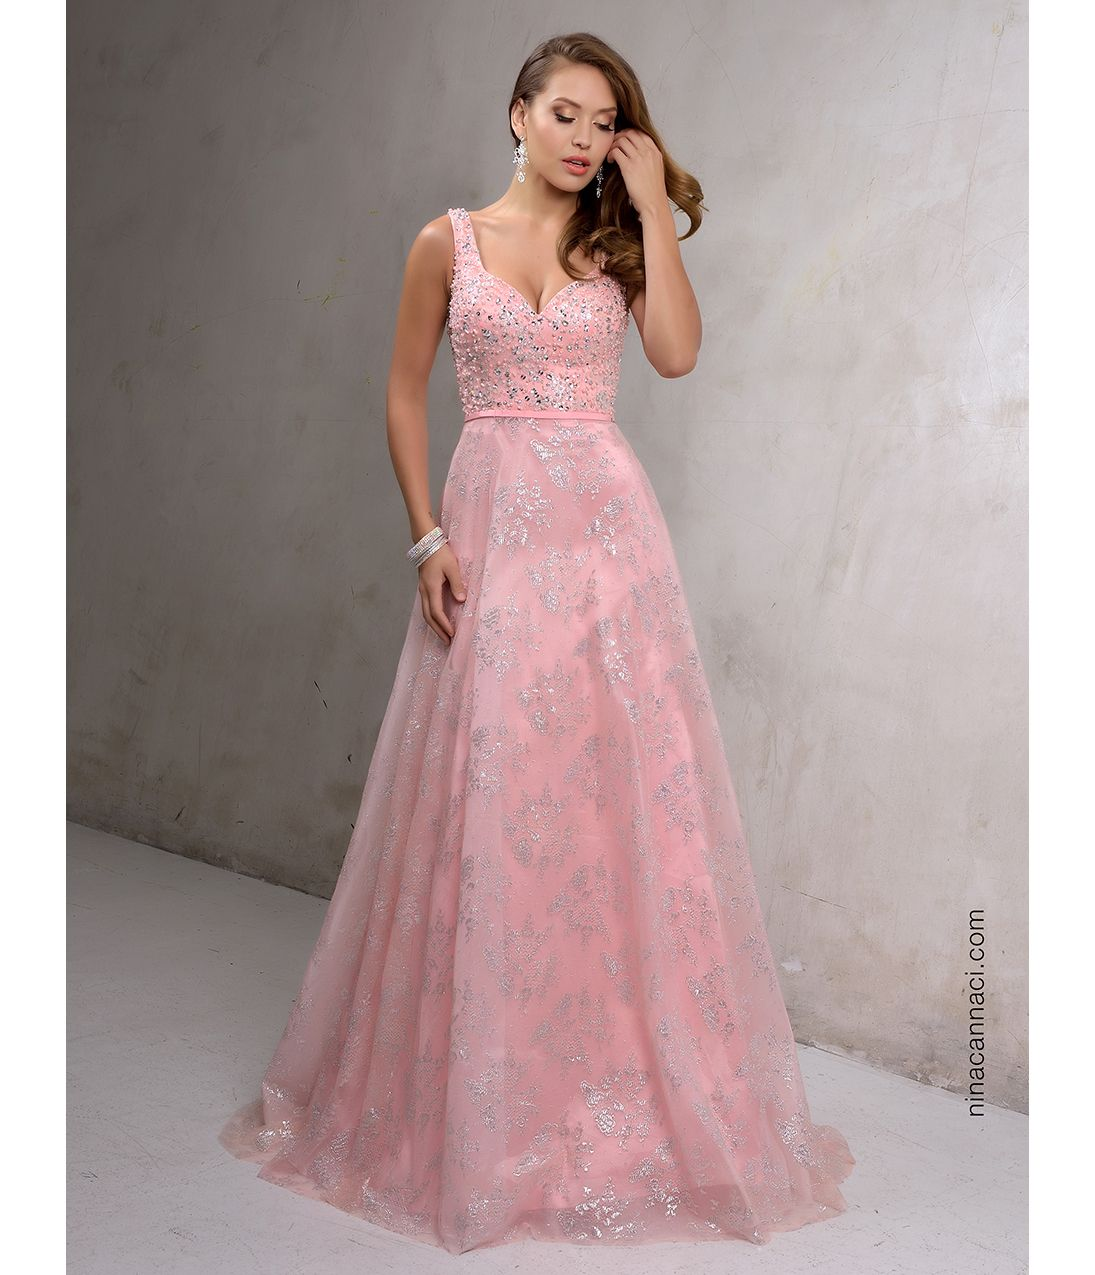 S prom dresses formal dresses evening gowns s bridesmaid